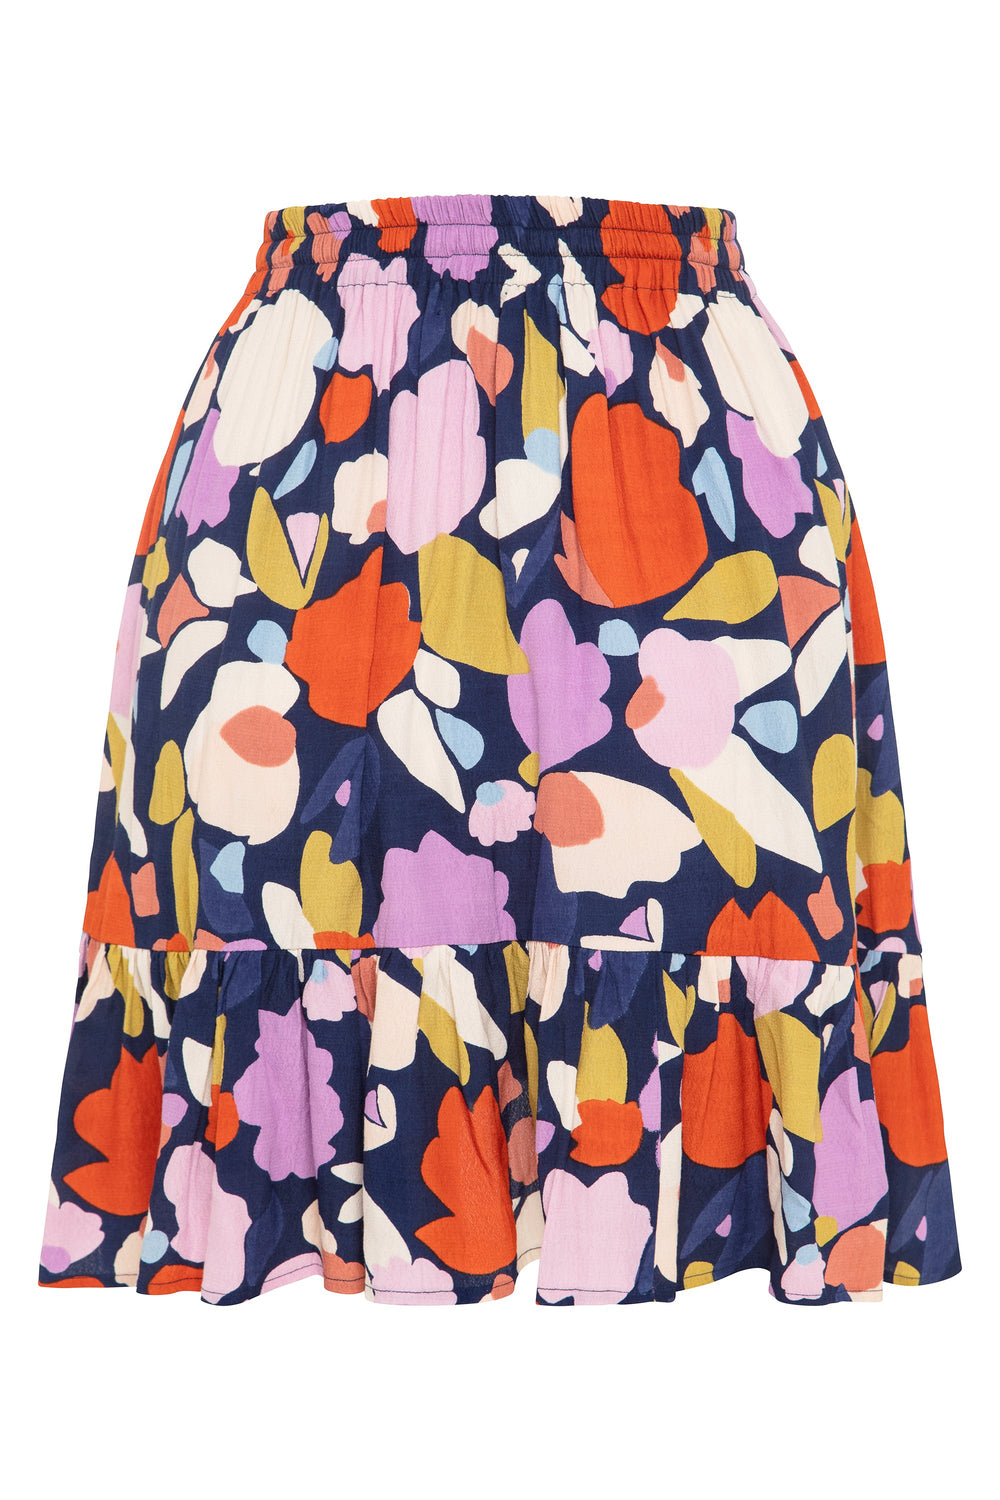 Velvie Skirt In Tulip